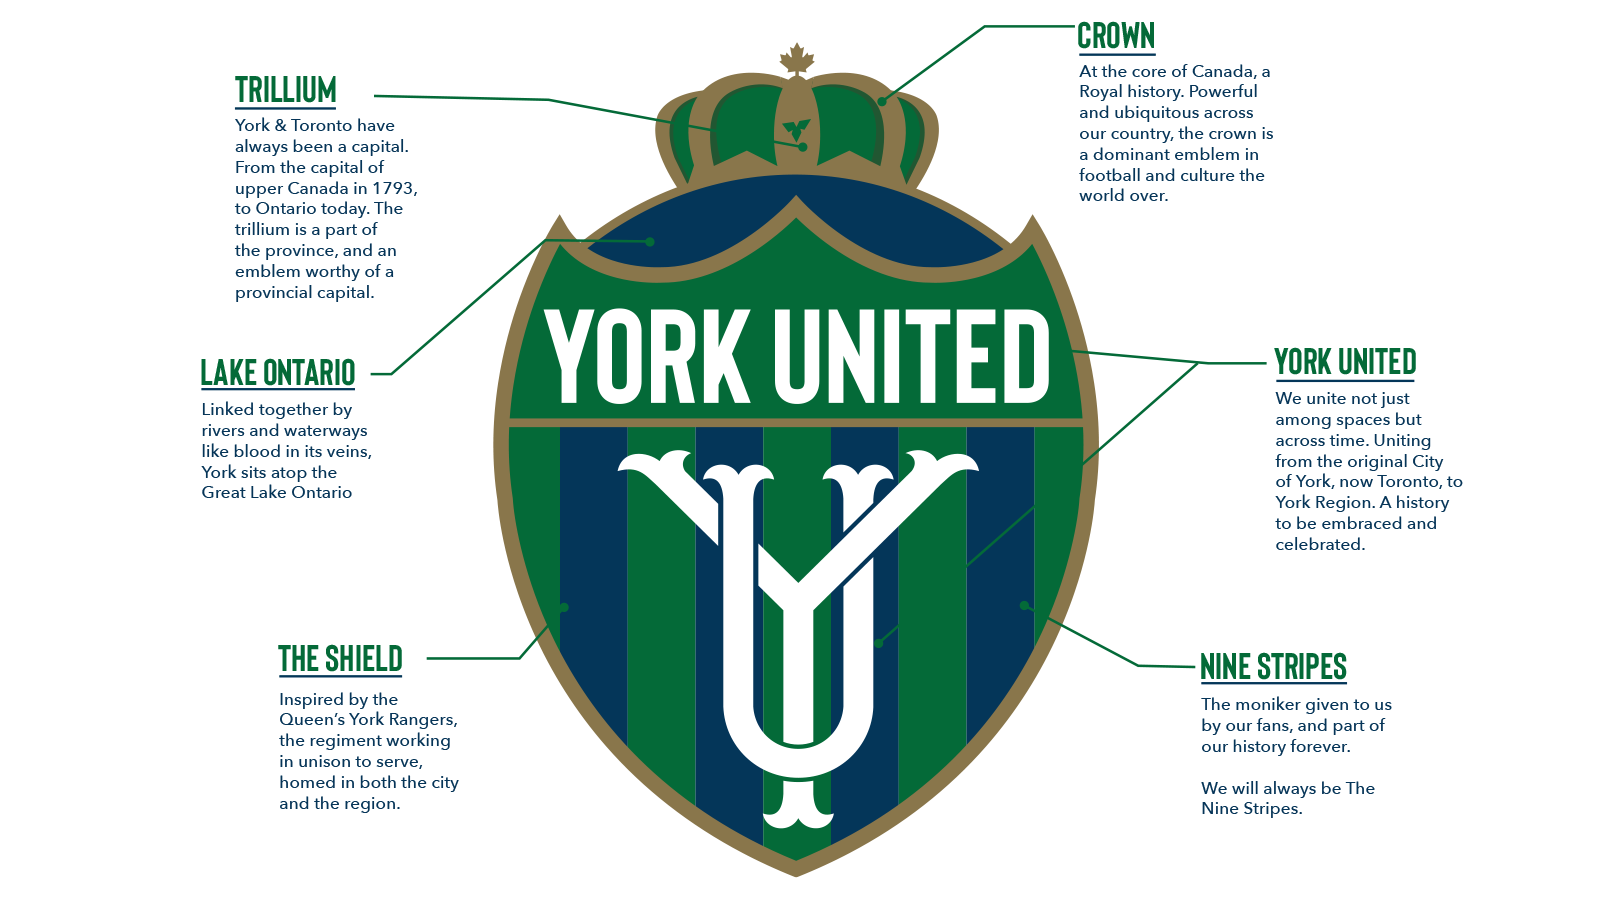 York United's crest, explained.